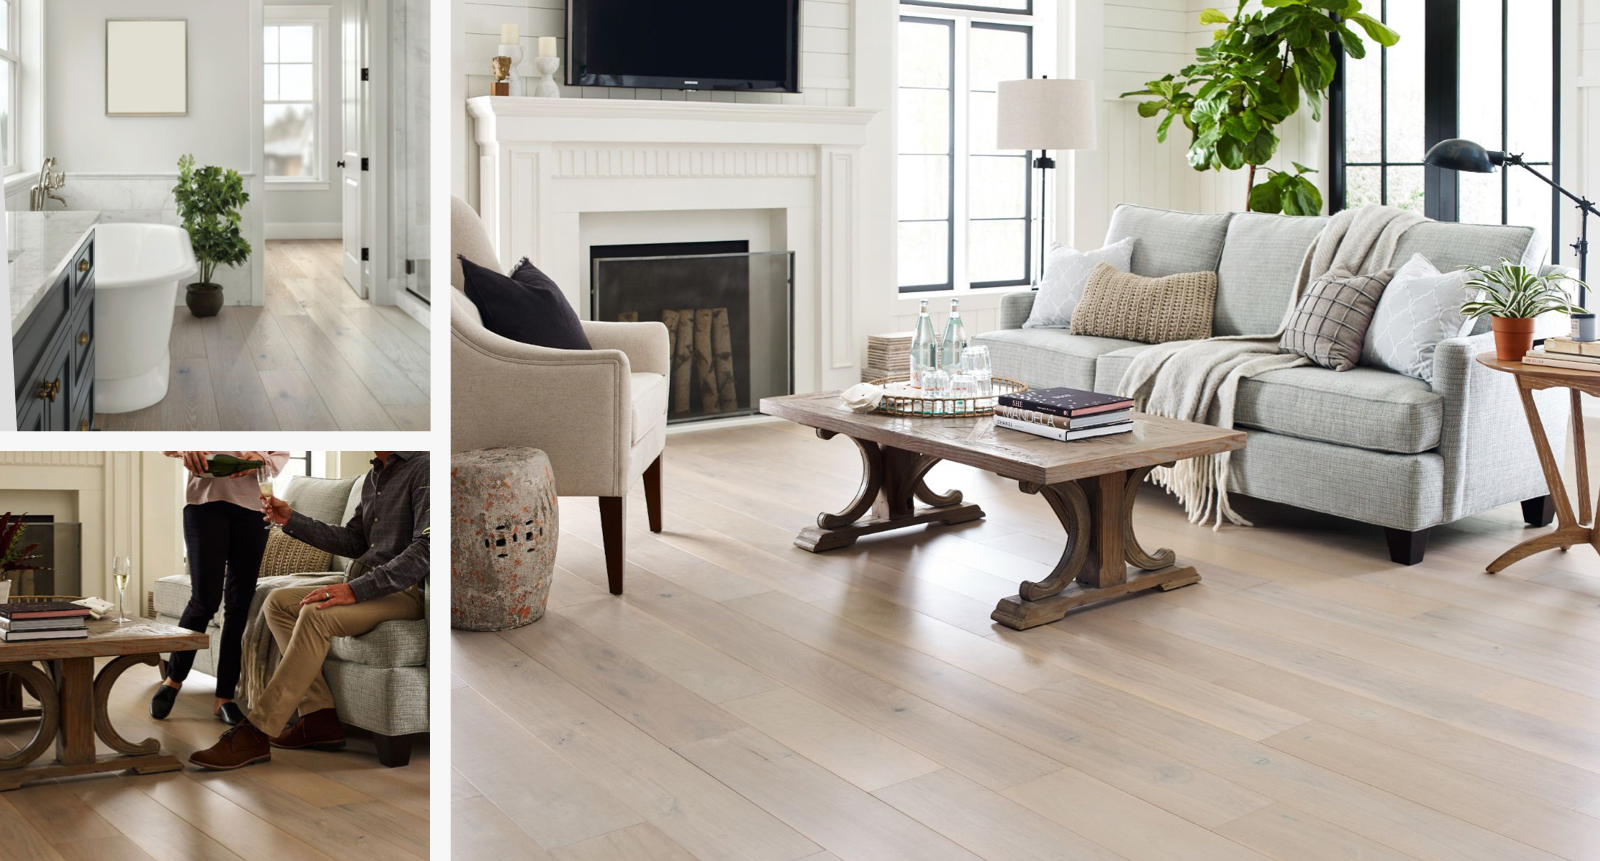 Floorte waterproof hardwood flooring for your home | Wacky's Flooring